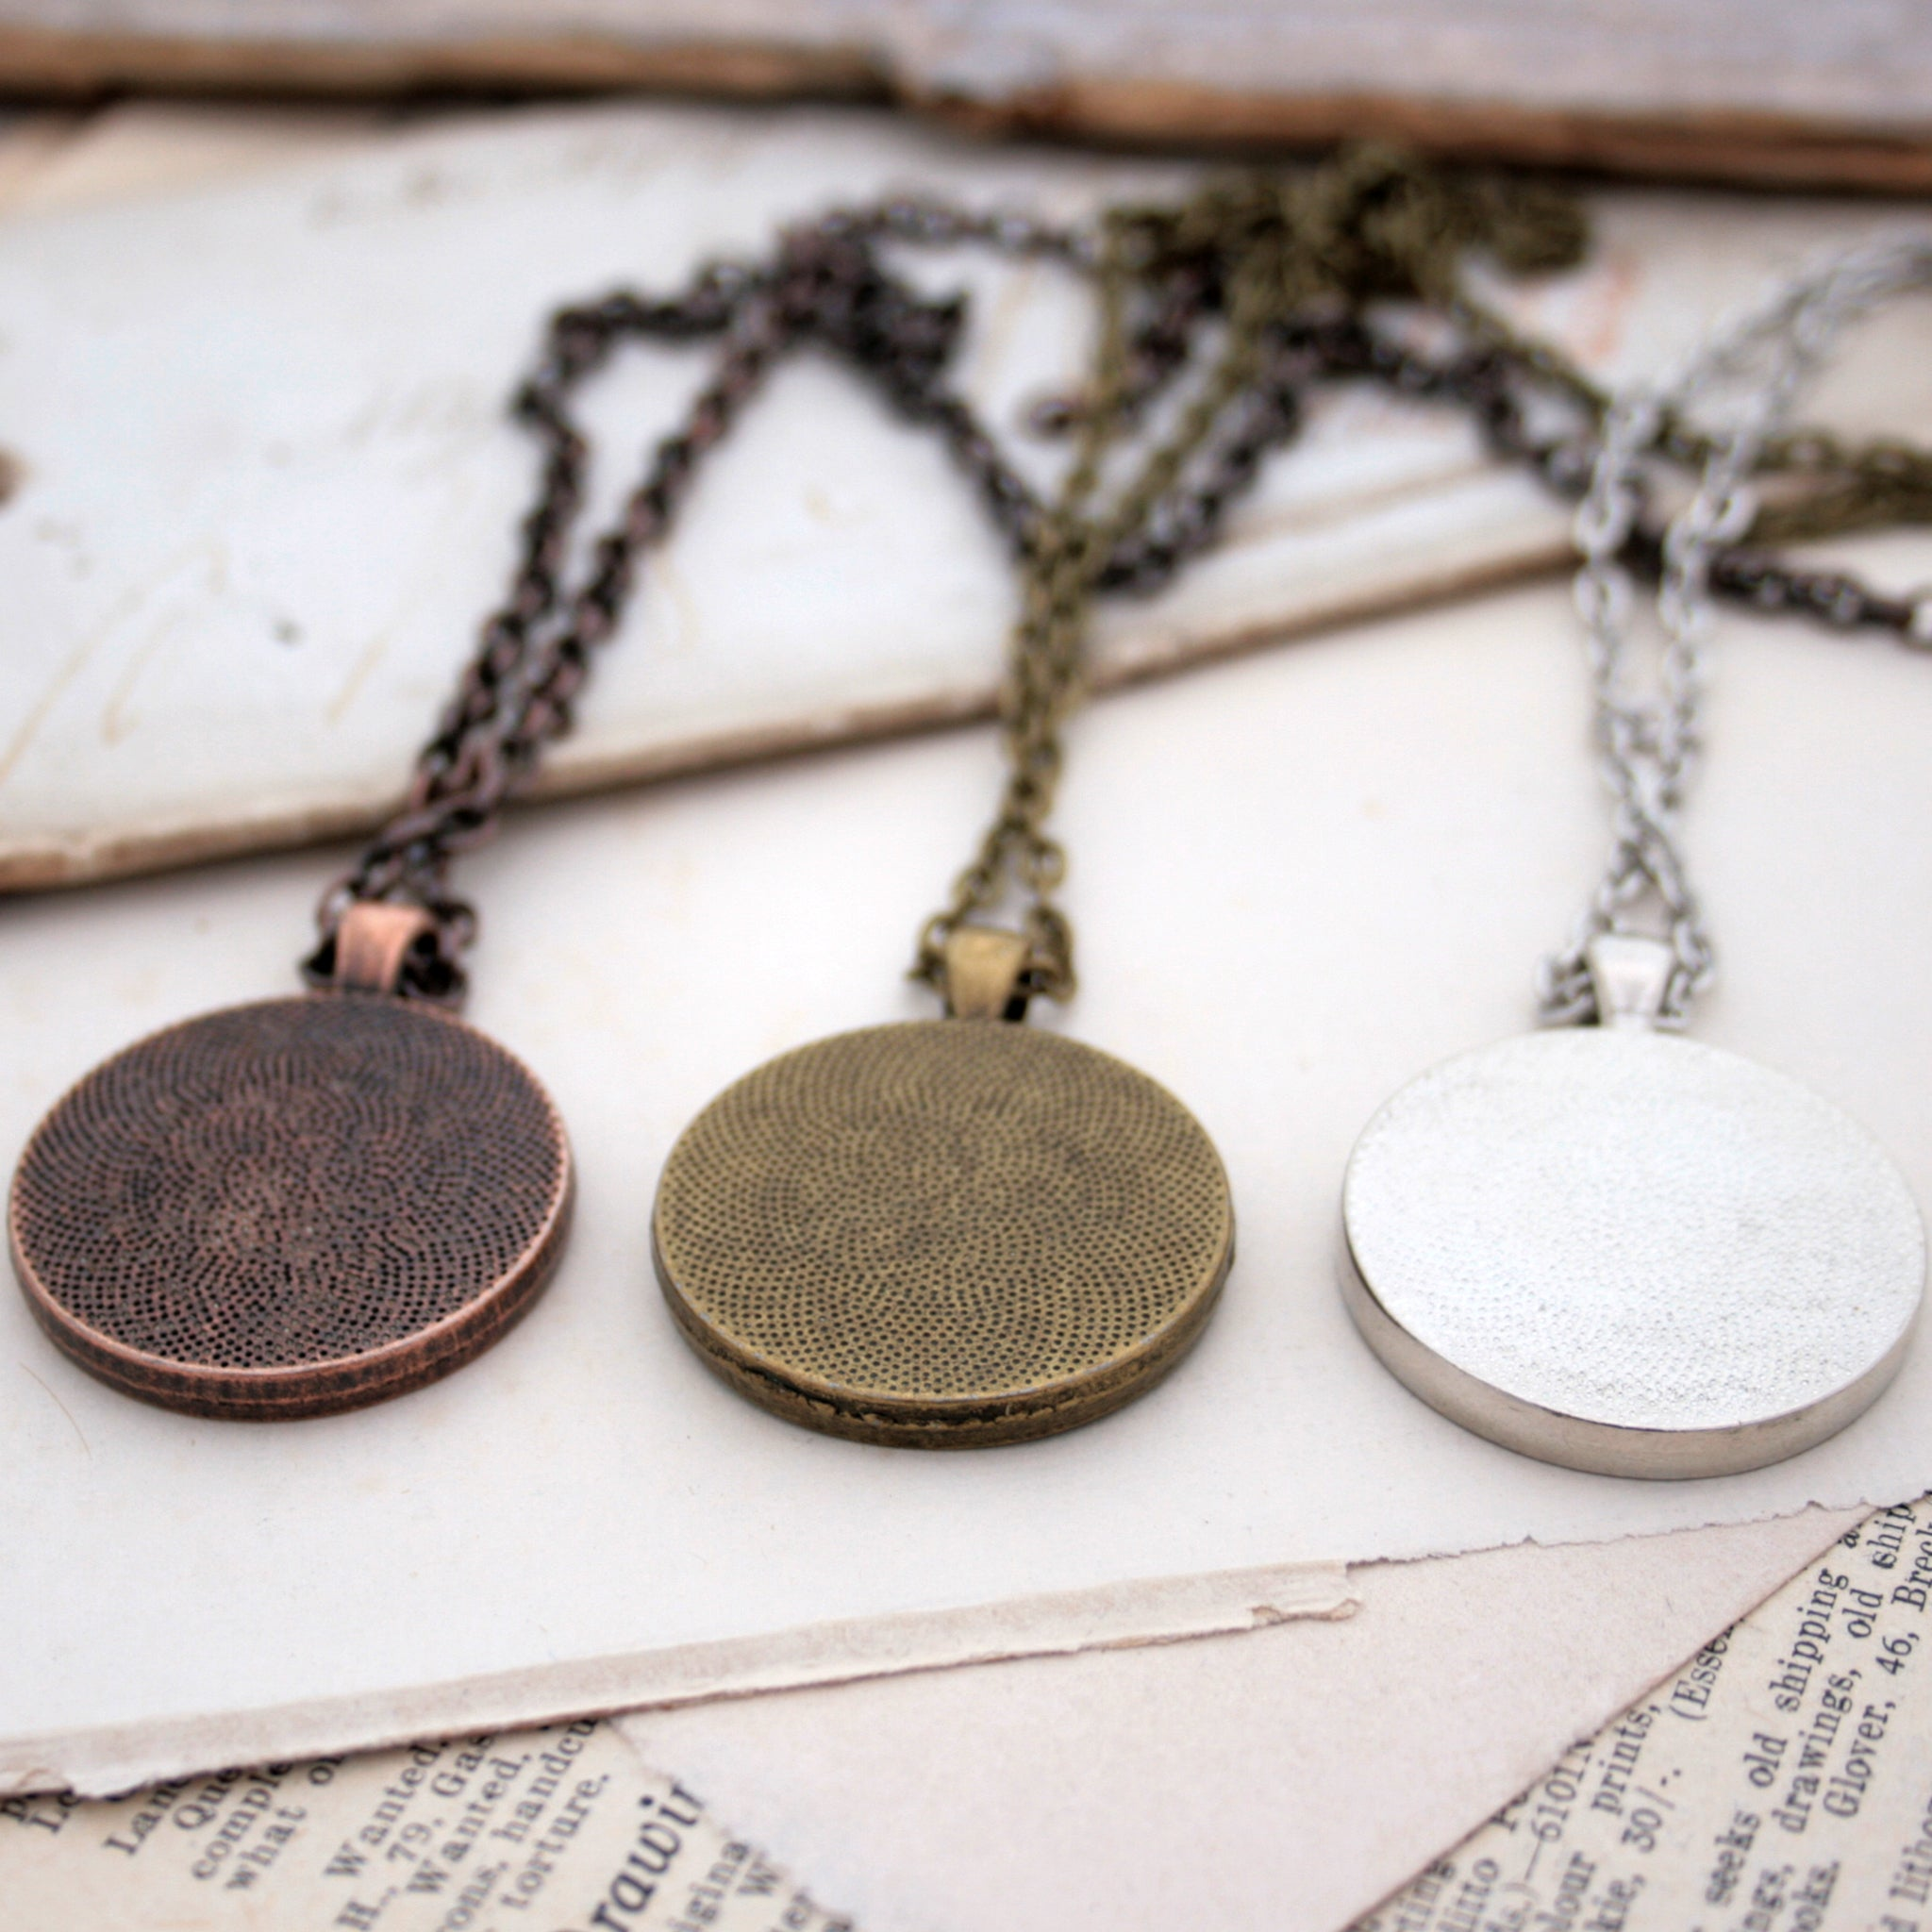 Copper, bronze and silver necklaces on the backside